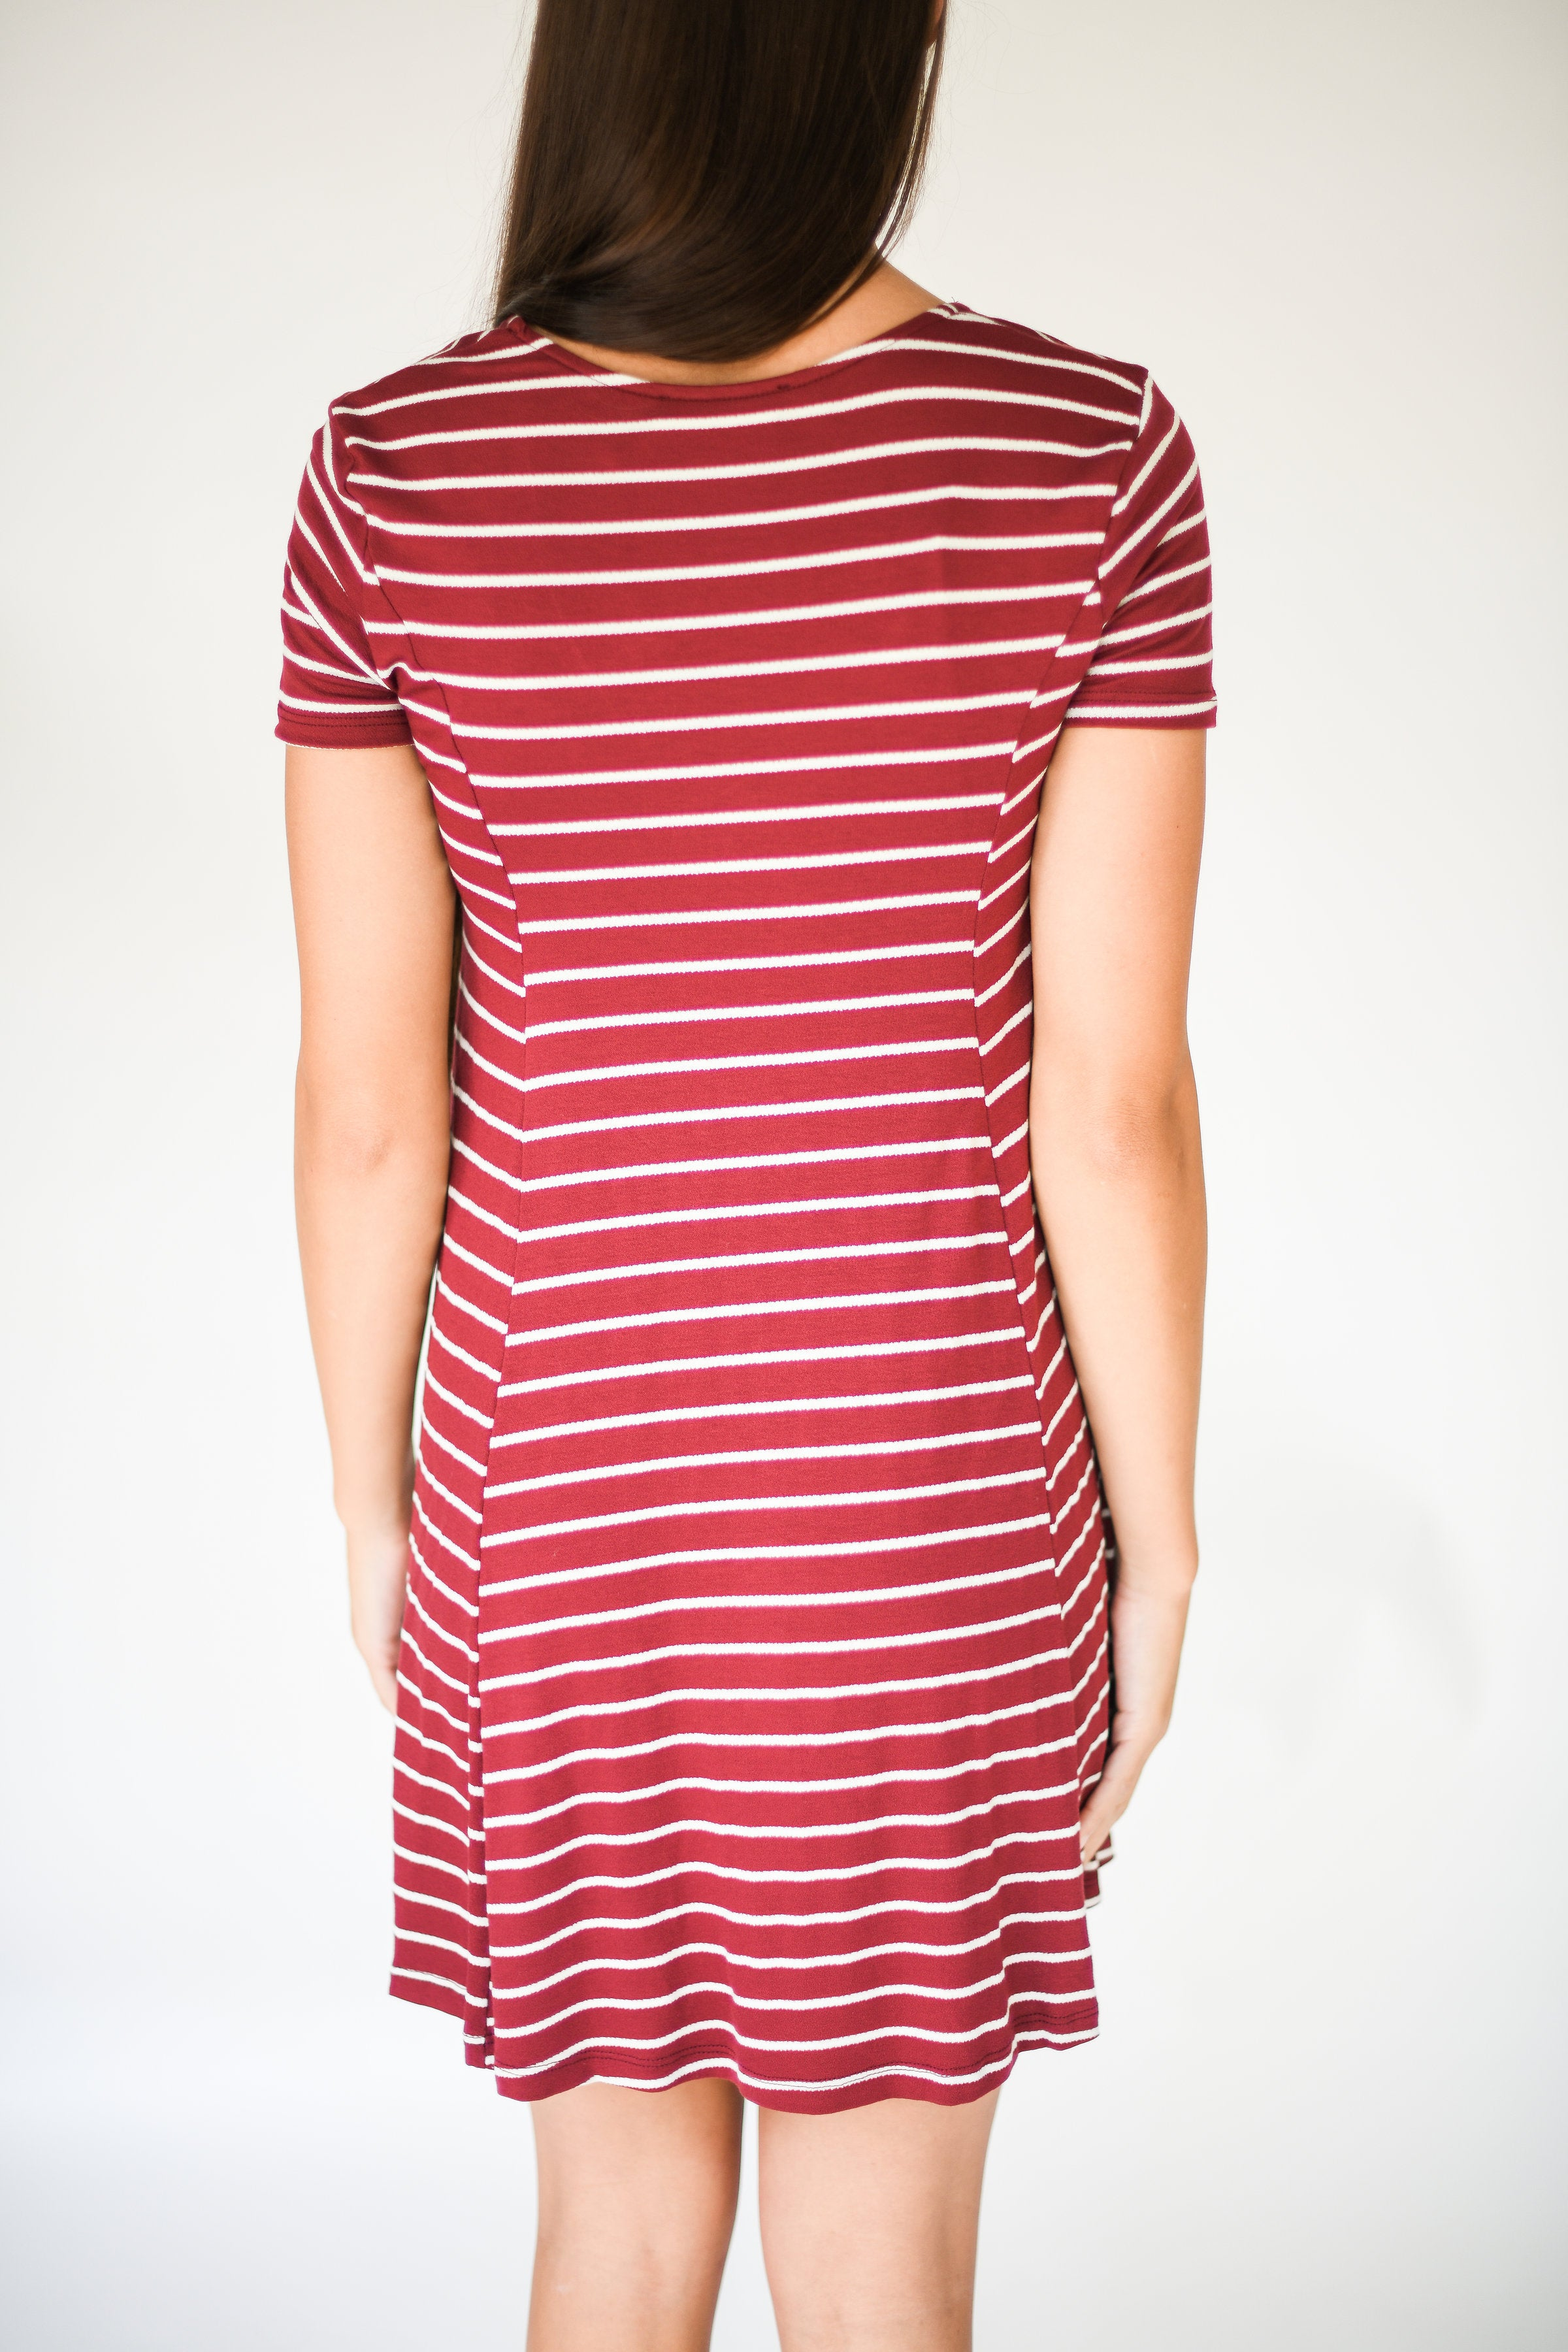 Wine and Dine Striped T-Shirt Dress:  Burgundy